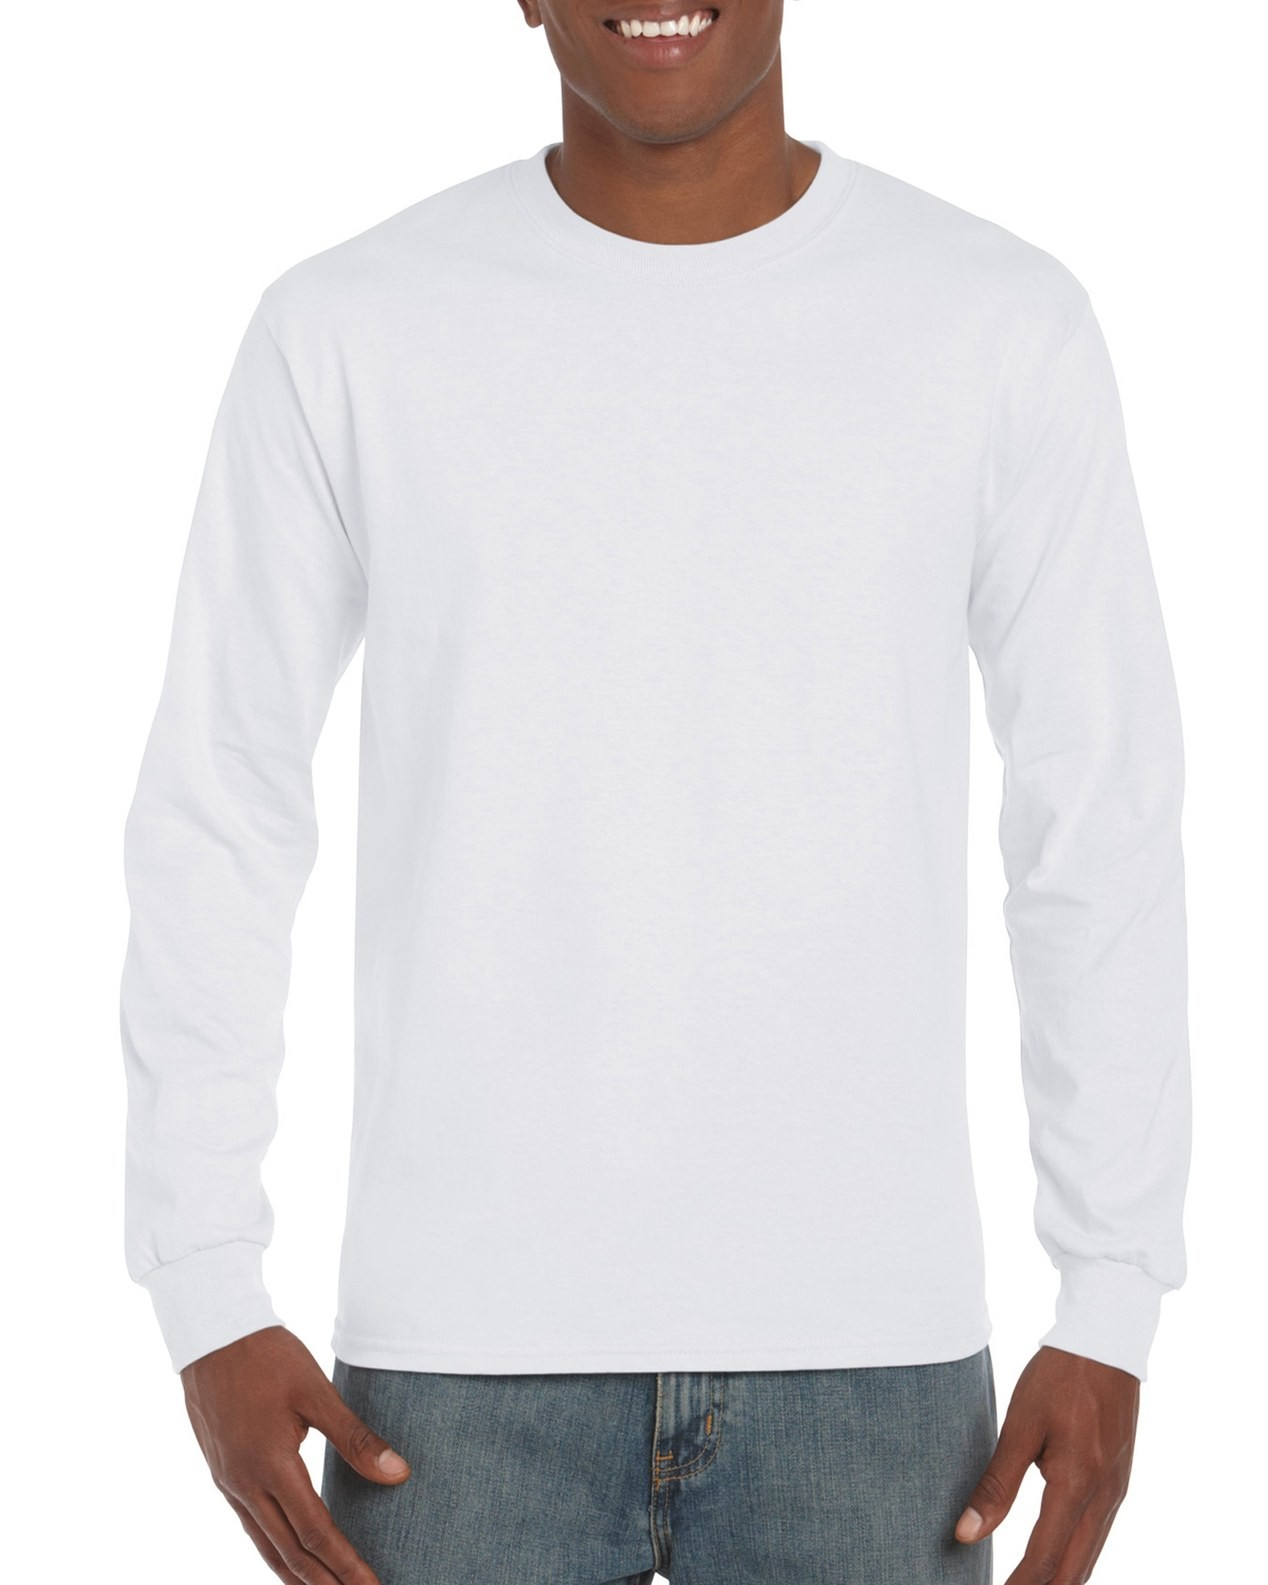 Purchase Adult Cuffed Long Sleeve T-Shirts Onilne Now 3cc4636fe